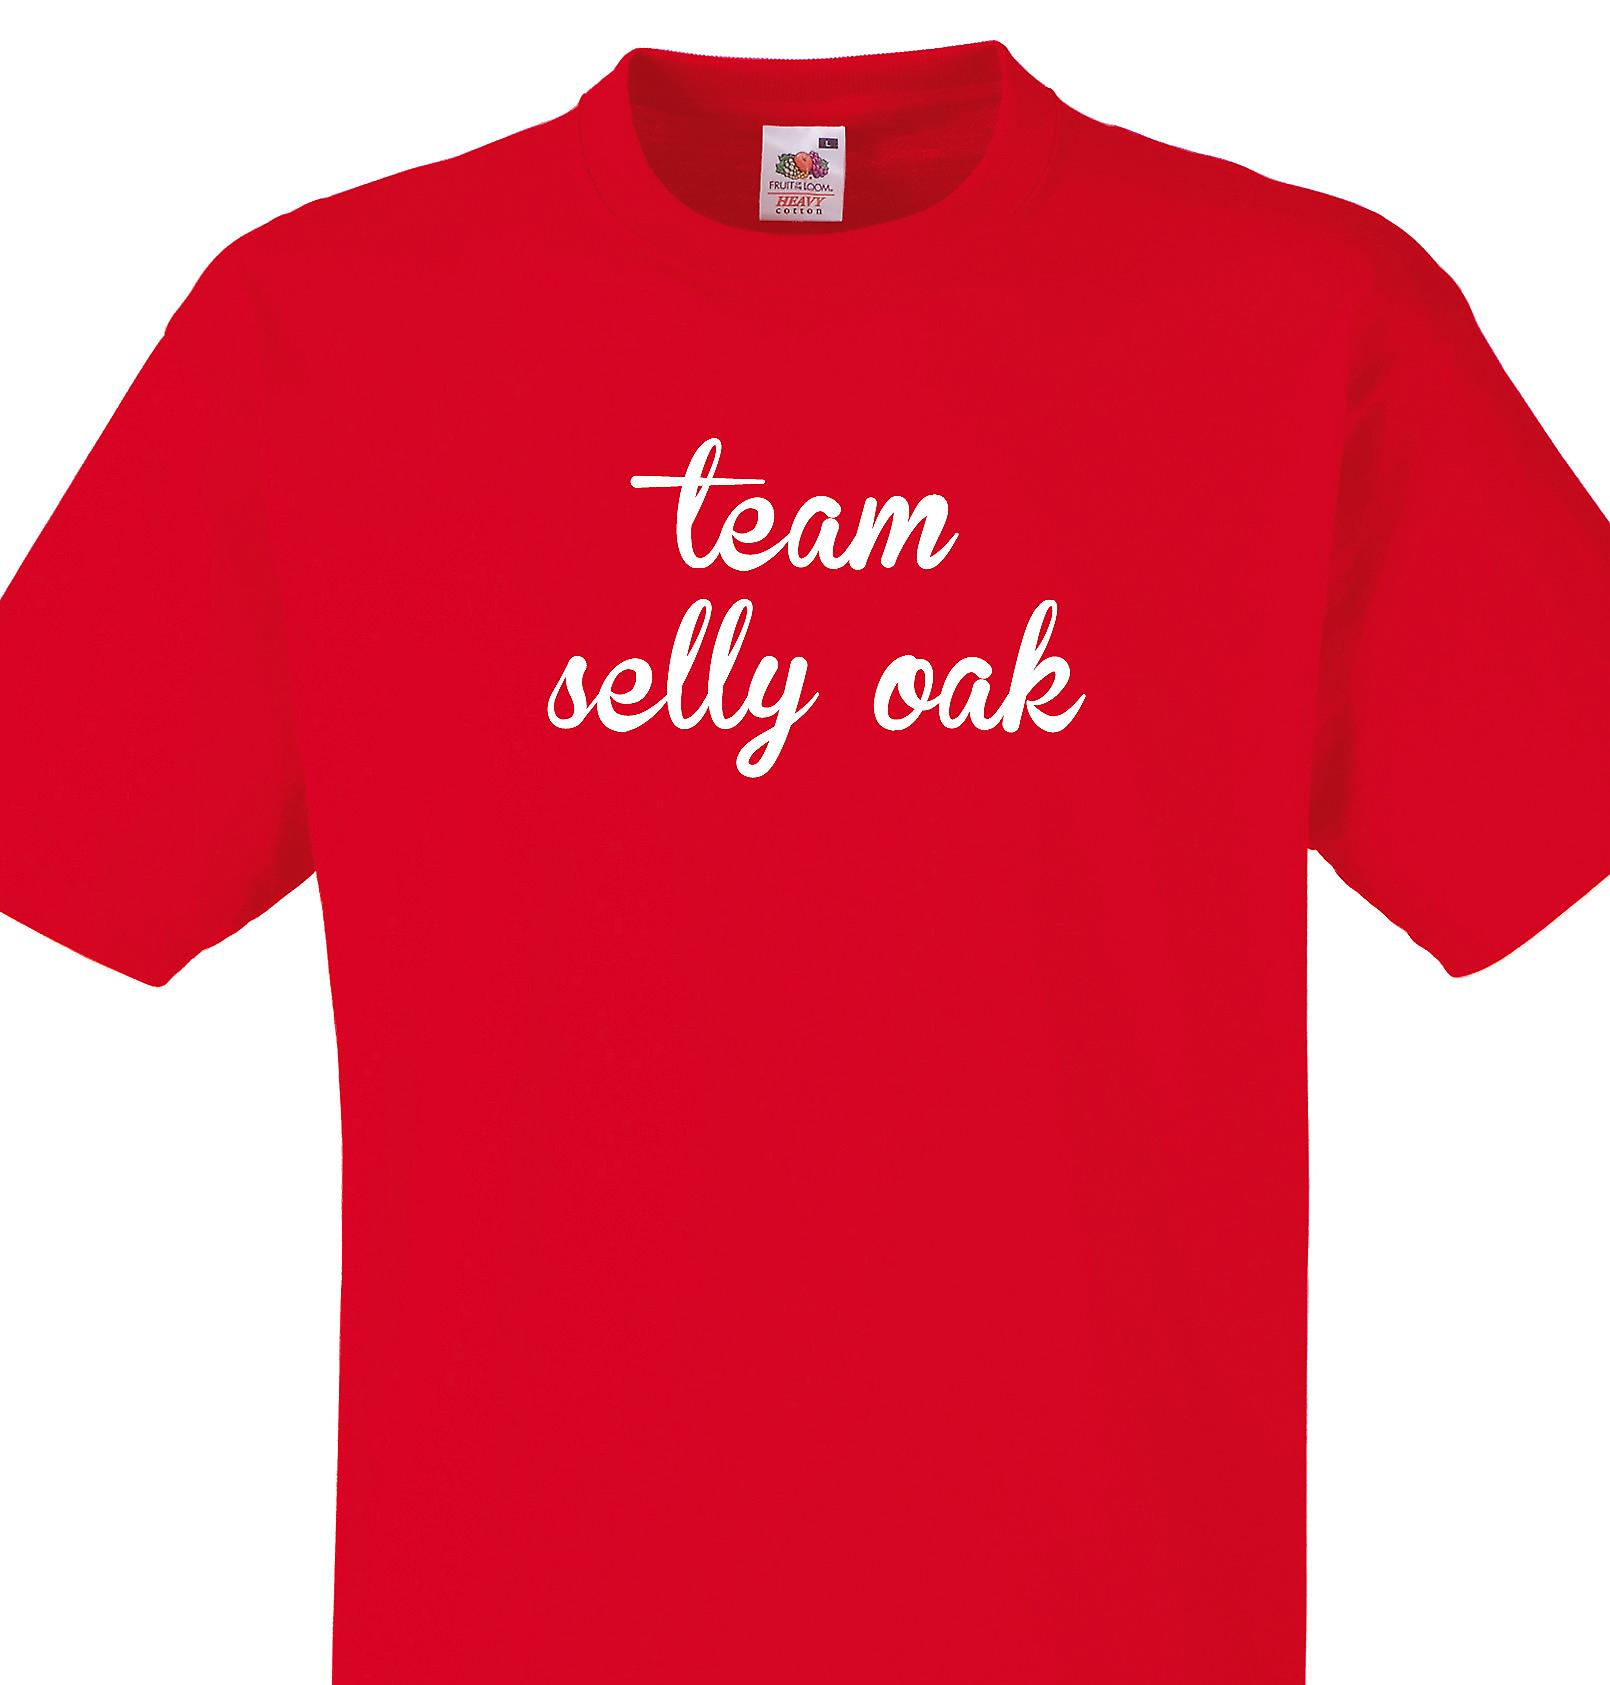 Team Selly oak Red T shirt